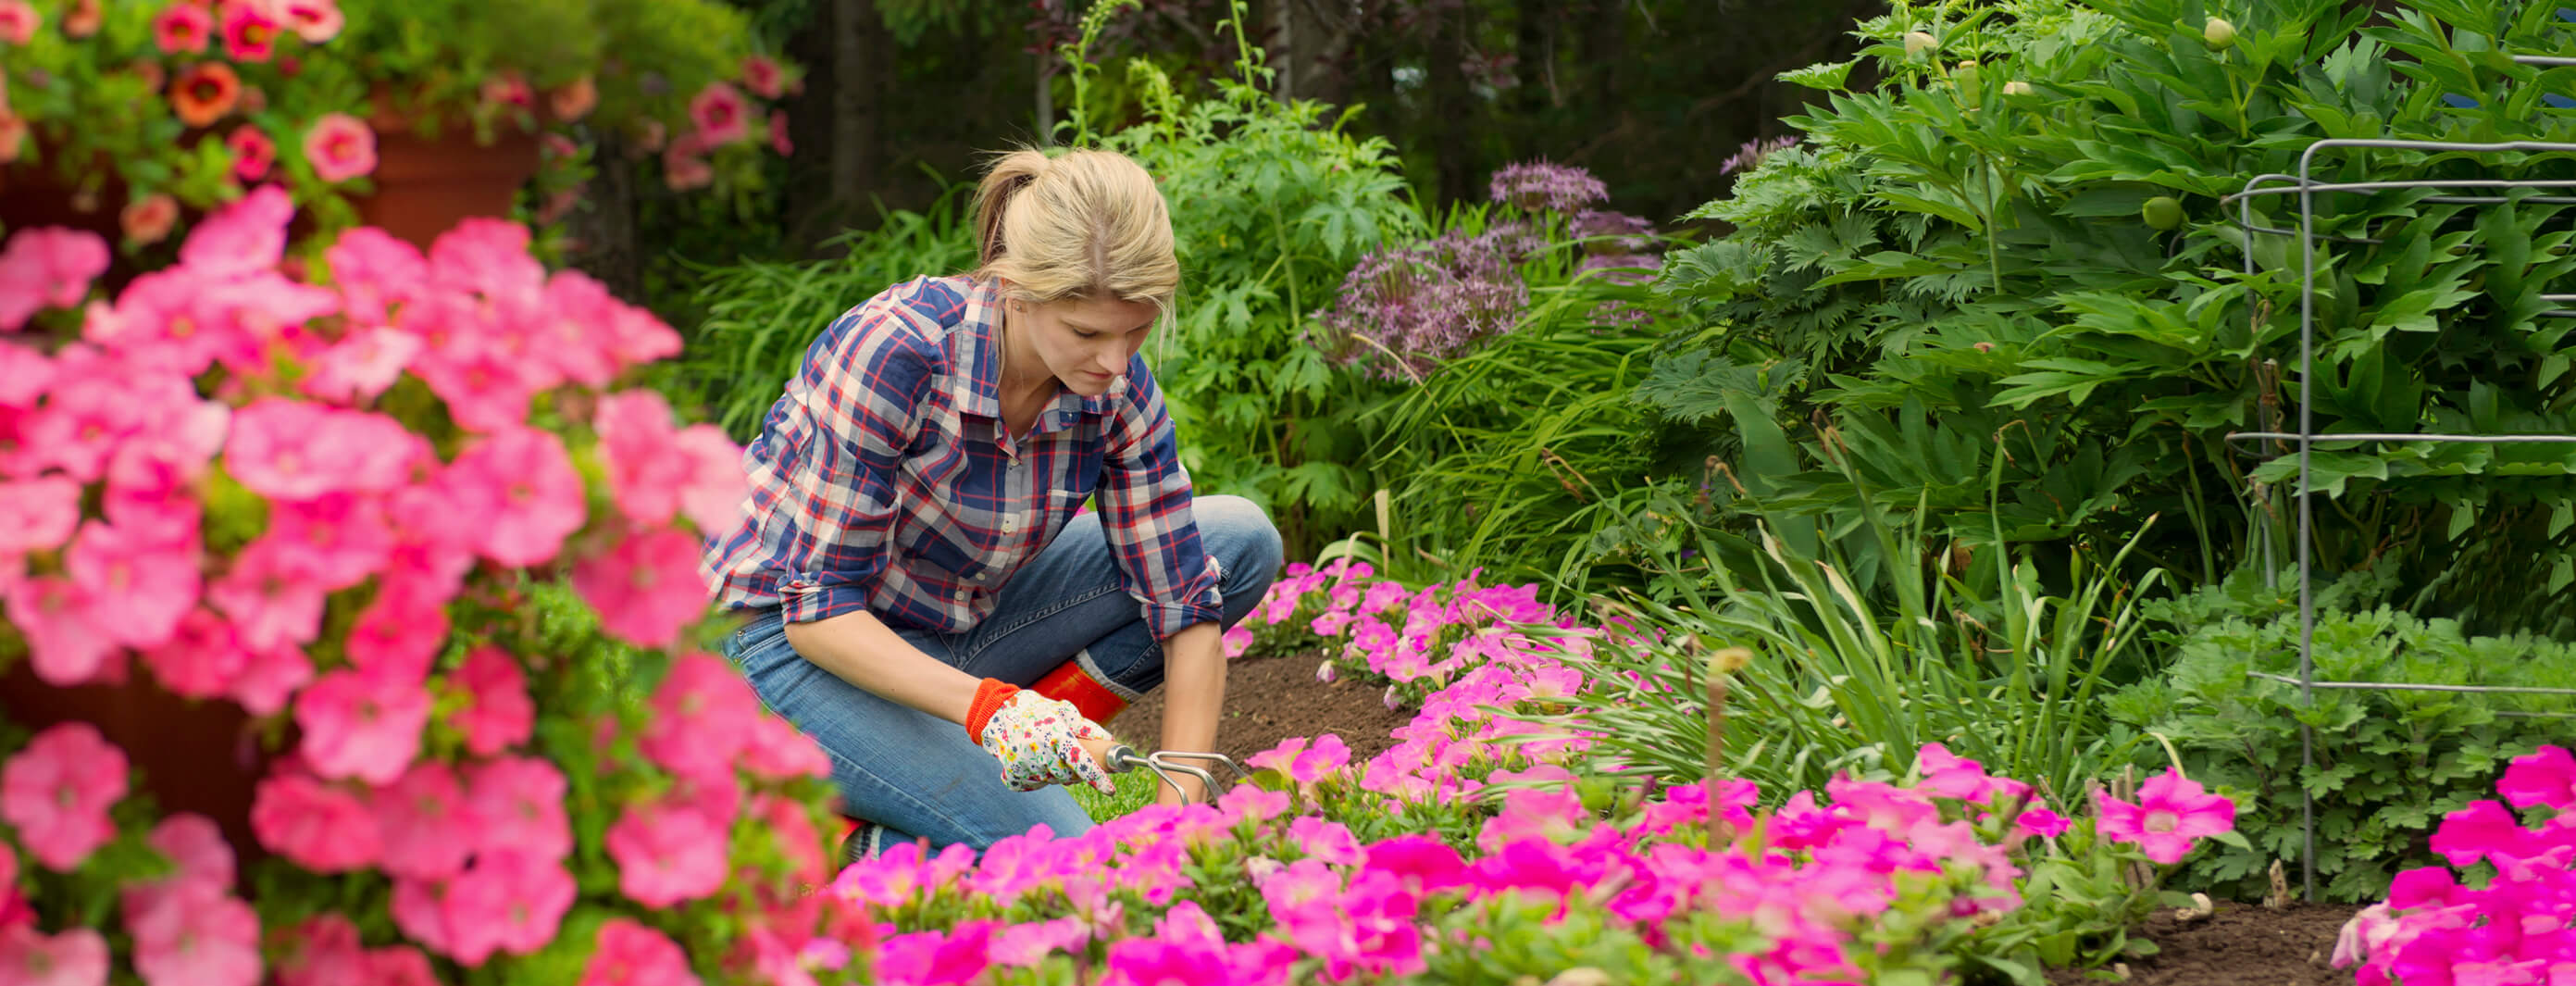 flower gardener using ploughman's choice compost